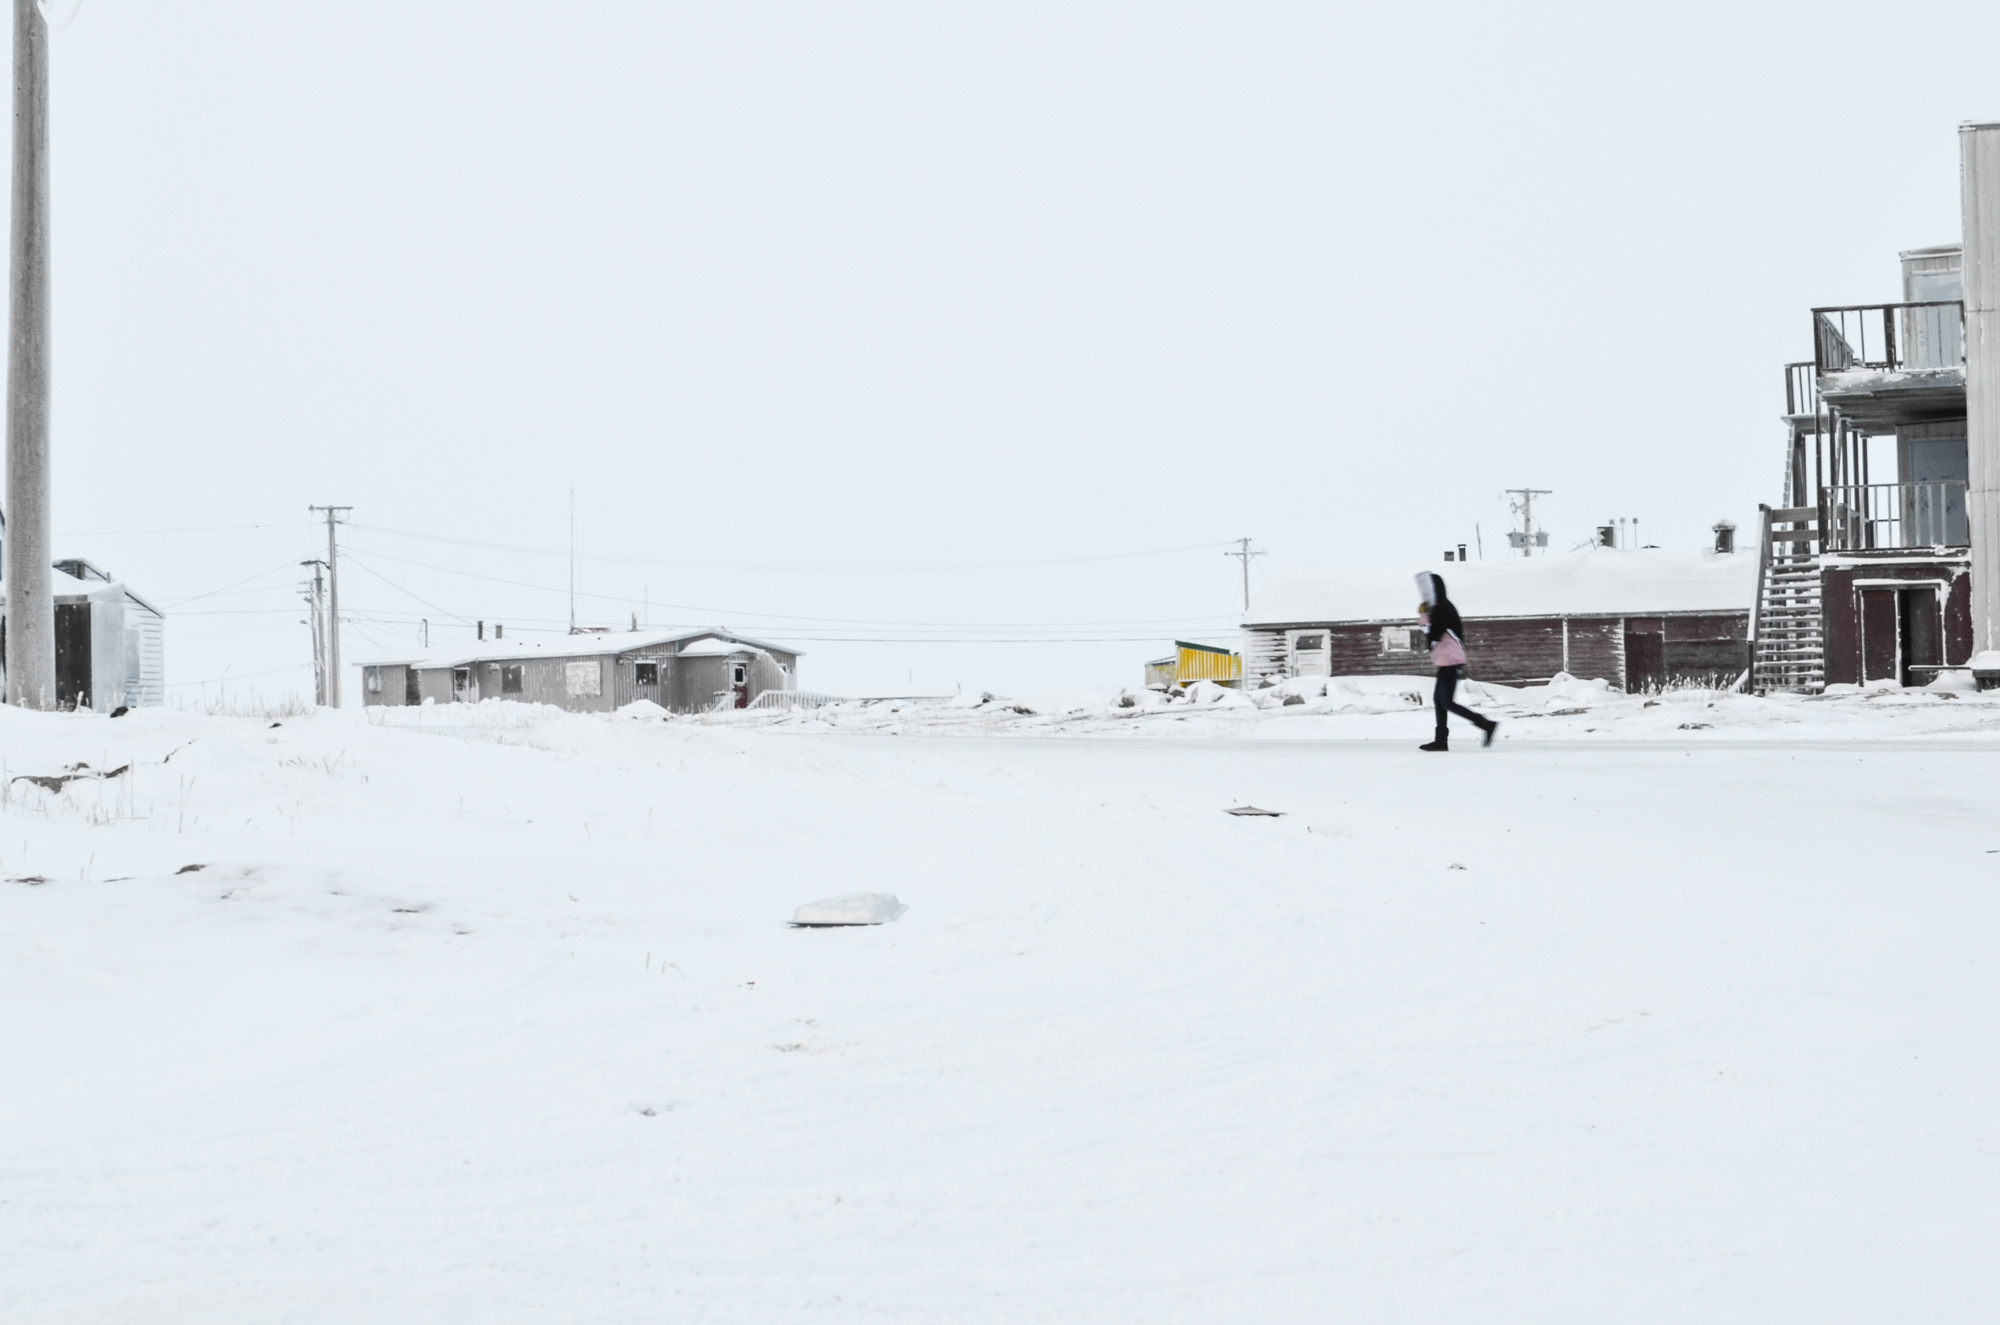 Winter in Chesterfield Inlet